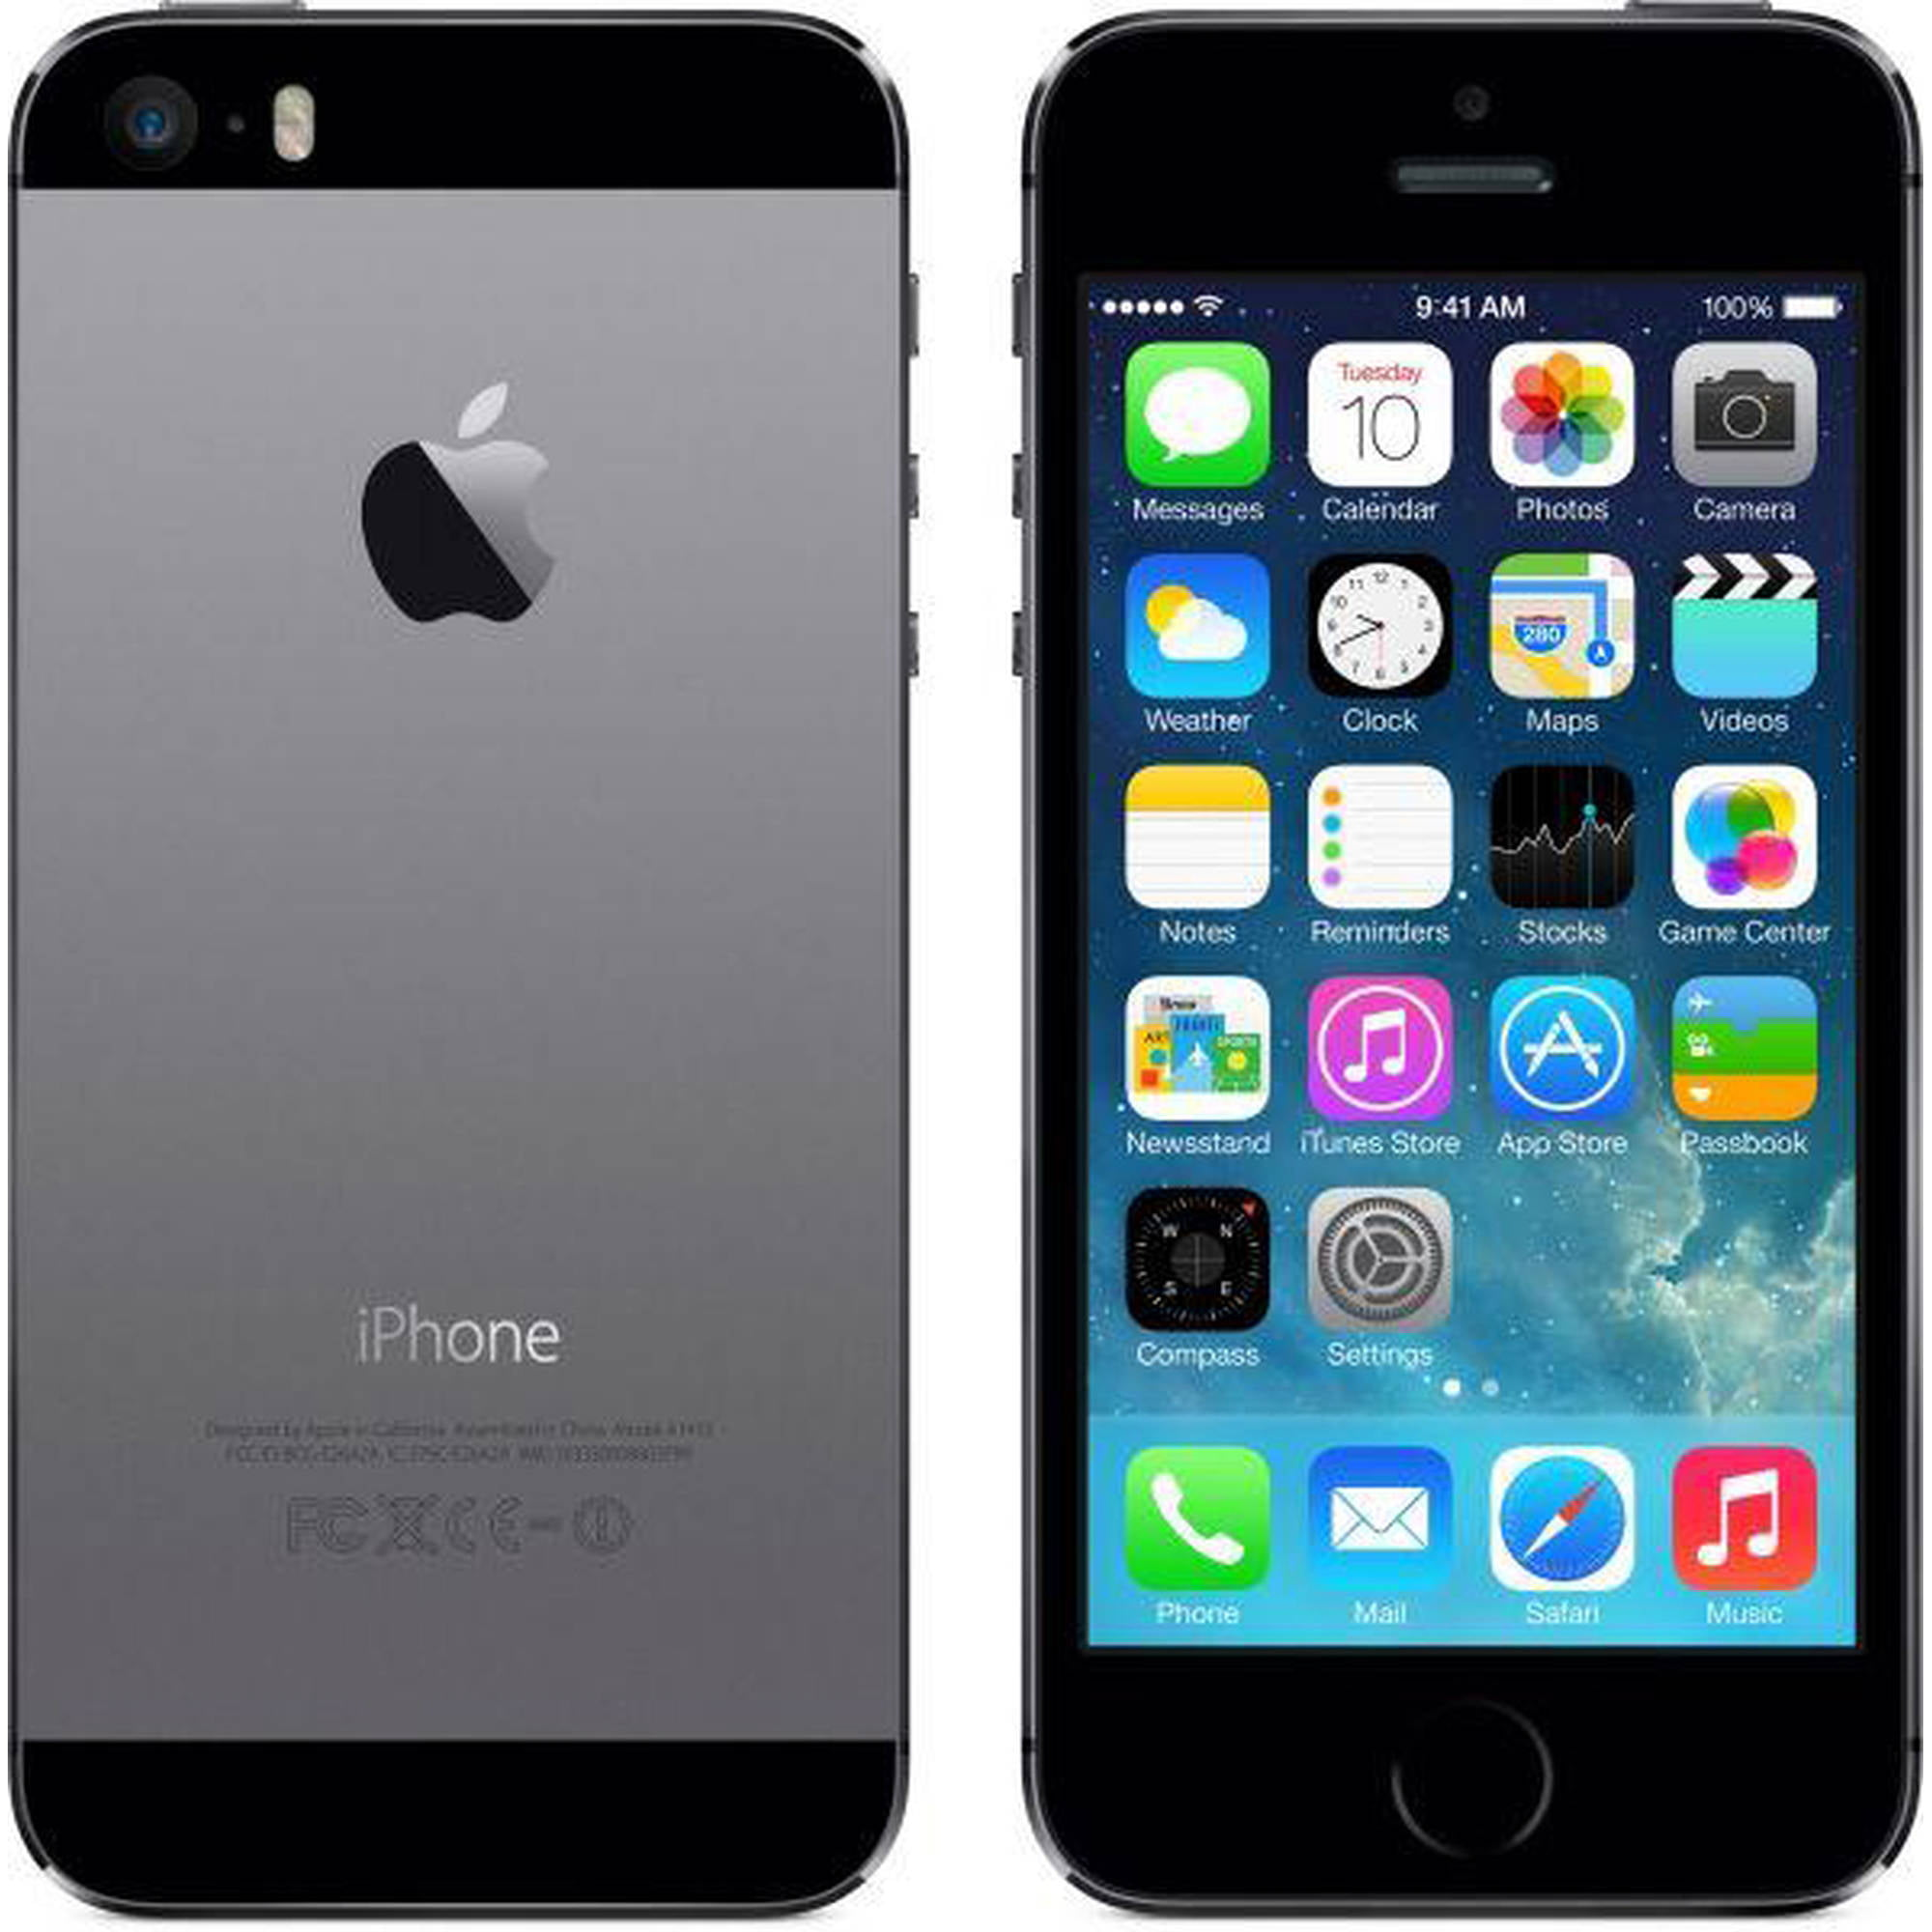 Apple iPhone 5s 16GB Unlocked GSM 4G LTE Dual Core Phone w 8MP